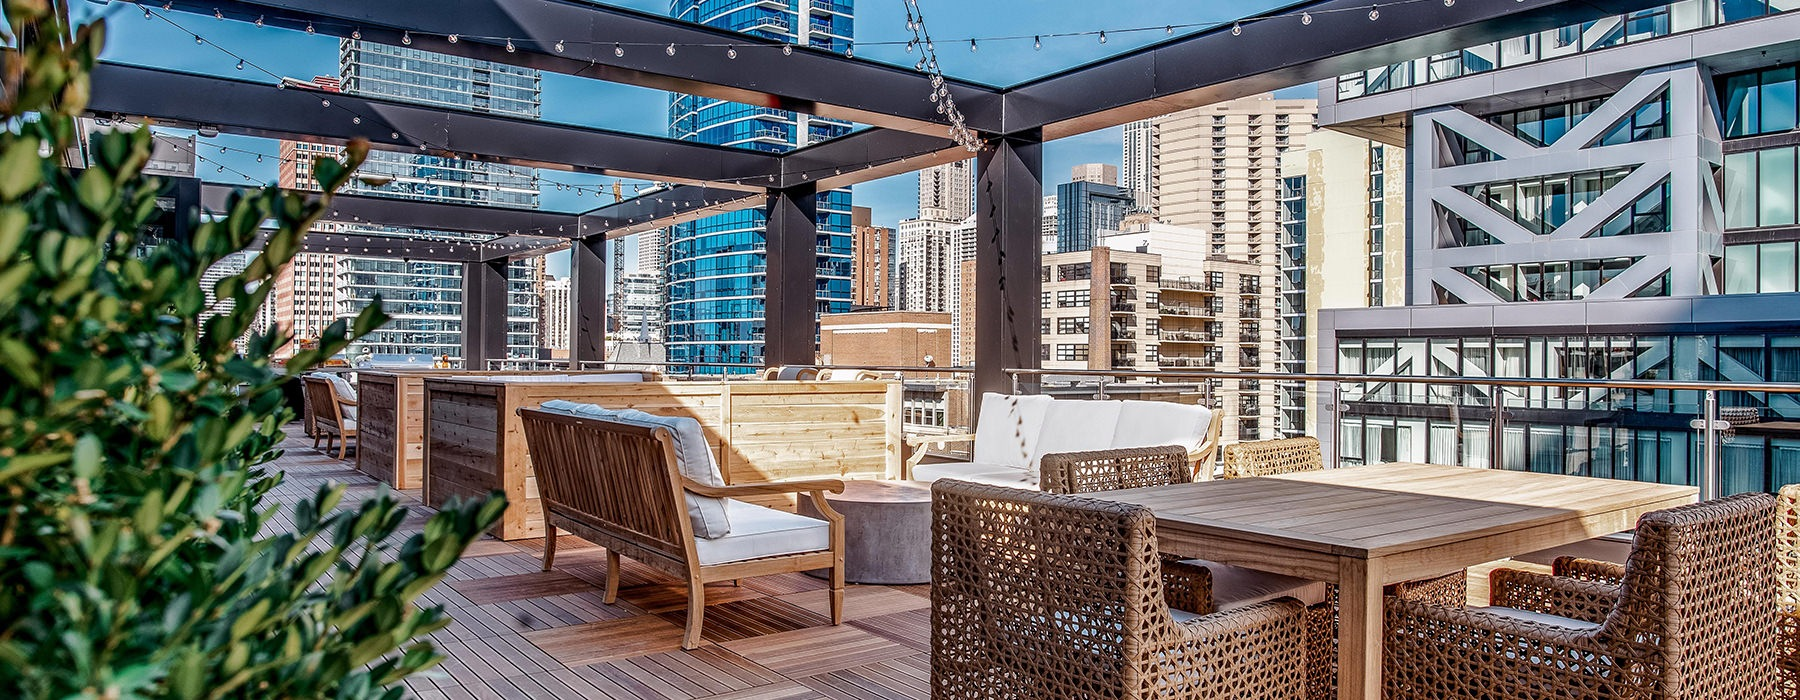 rooftop lounge with chairs and tables